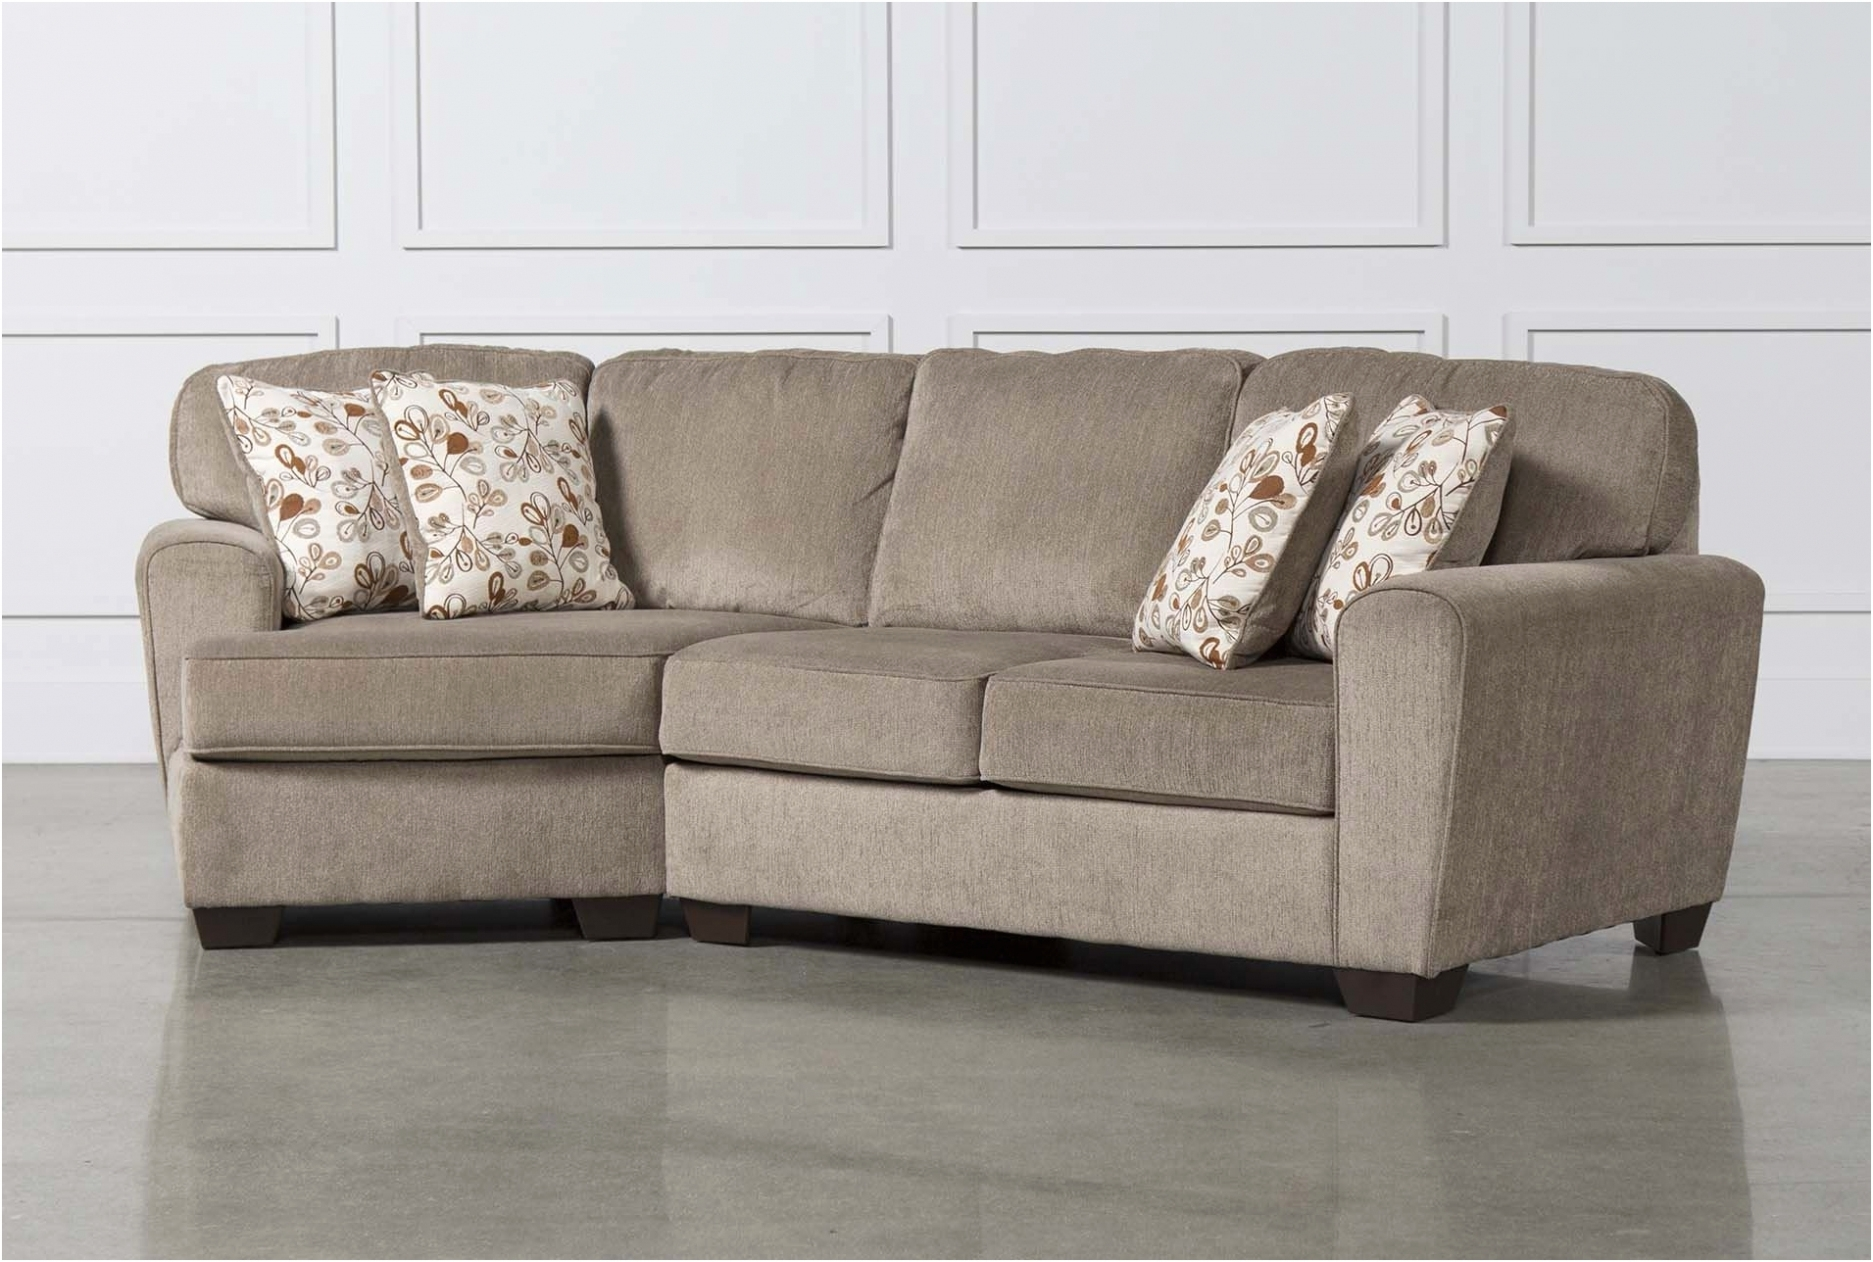 Living Spaces Sectional Sofa Bed – Sofa Design Ideas With Regard To Delano 2 Piece Sectionals With Laf Oversized Chaise (View 20 of 30)